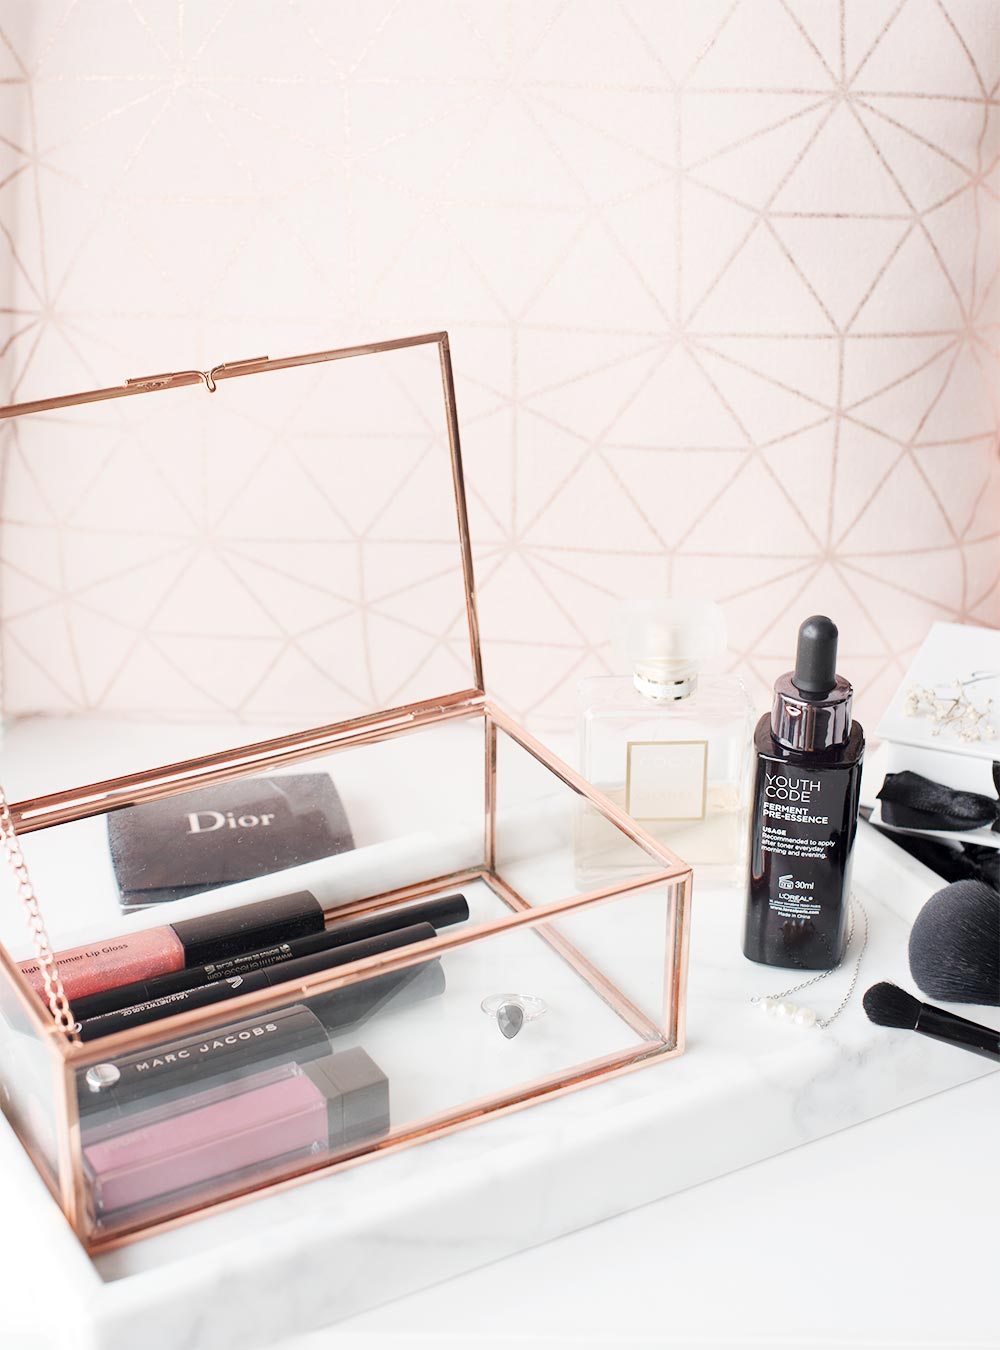 KonMari Method of Decluttering Your Makeup via The Skinny Scout